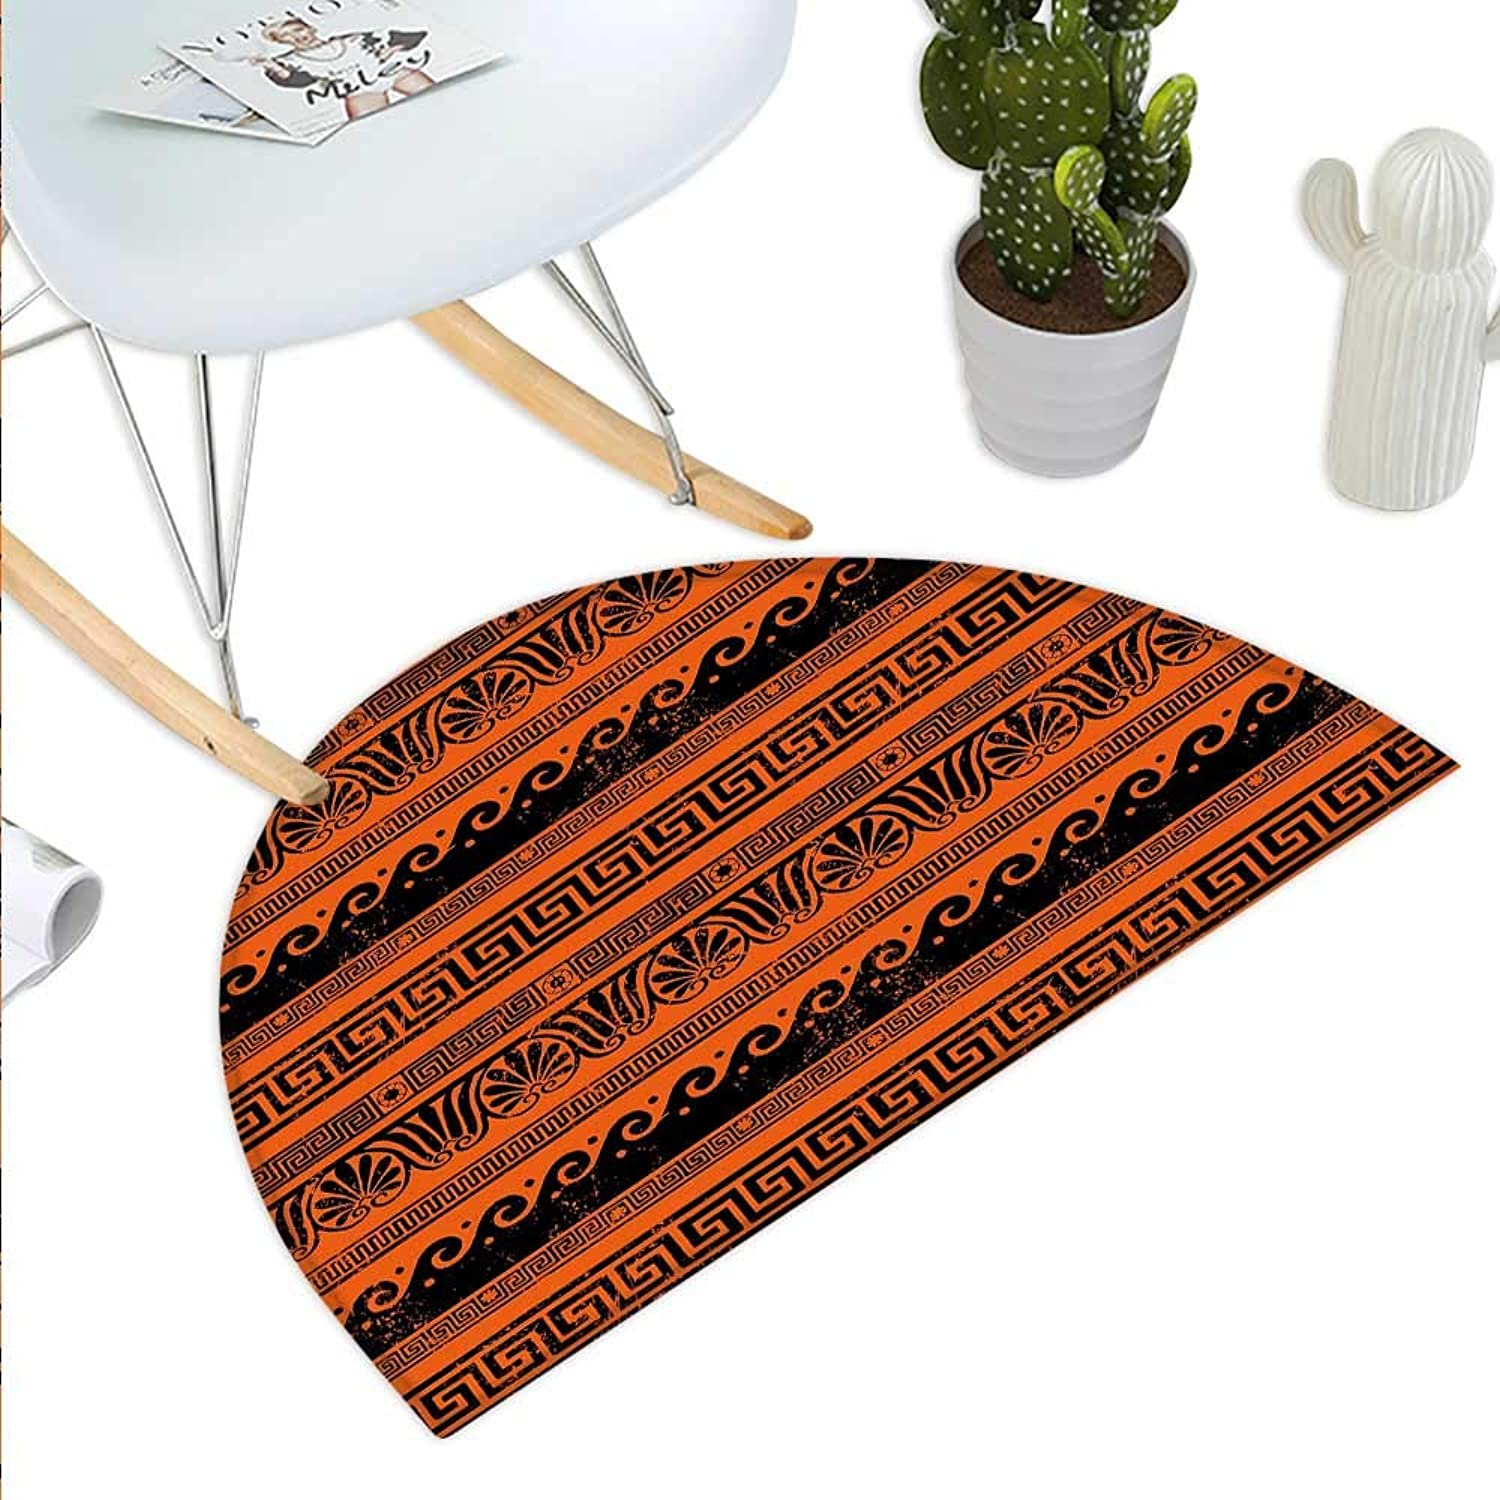 Toga Party Semicircle Doormat Classical Border Ornaments in Ancient Greek Style Grunge Aged Display Print Halfmoon doormats H 43.3  xD 64.9  orange Black